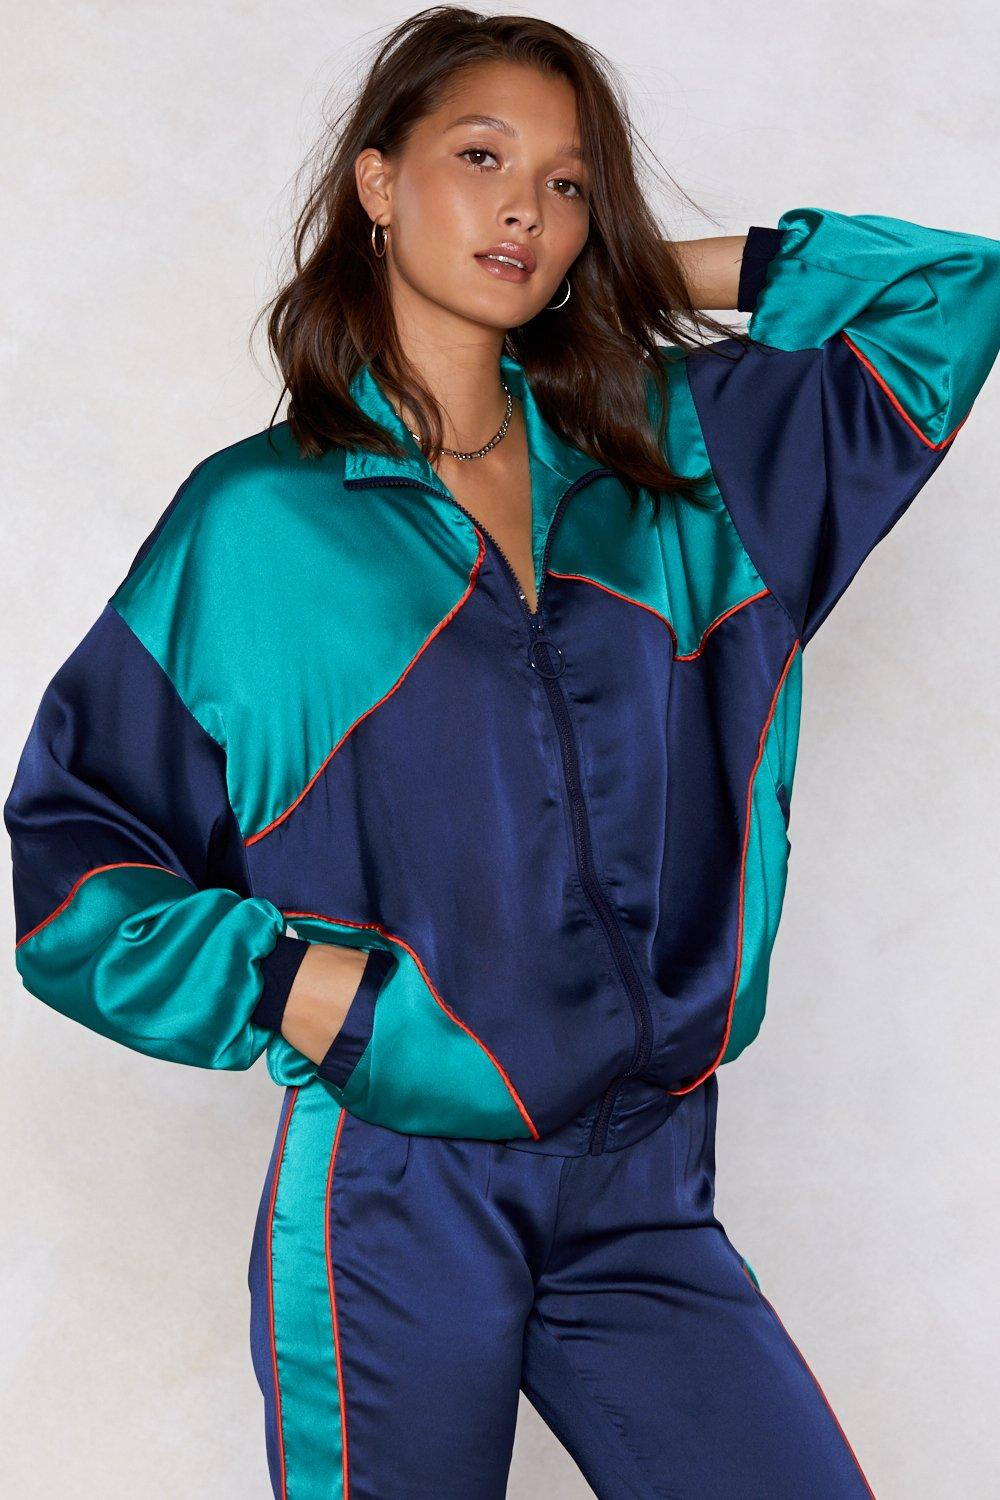 b011746dcb7 Hover to zoom · Lost Track of Time Satin Jacket